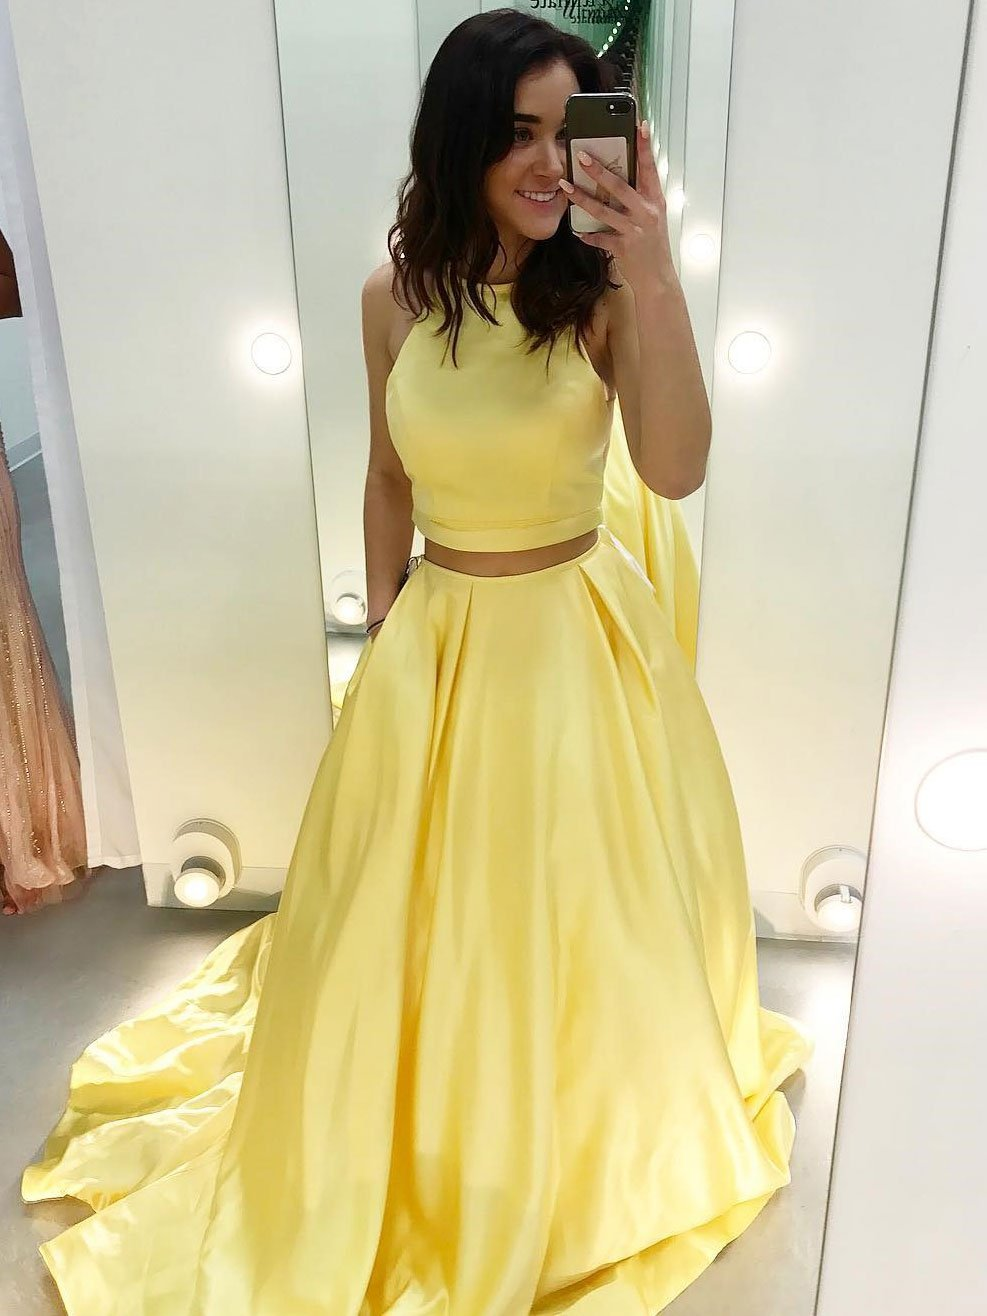 972abece20 Cheap Two Piece Prom Dresses Yellow Satin Formal Long Prom Dress ...